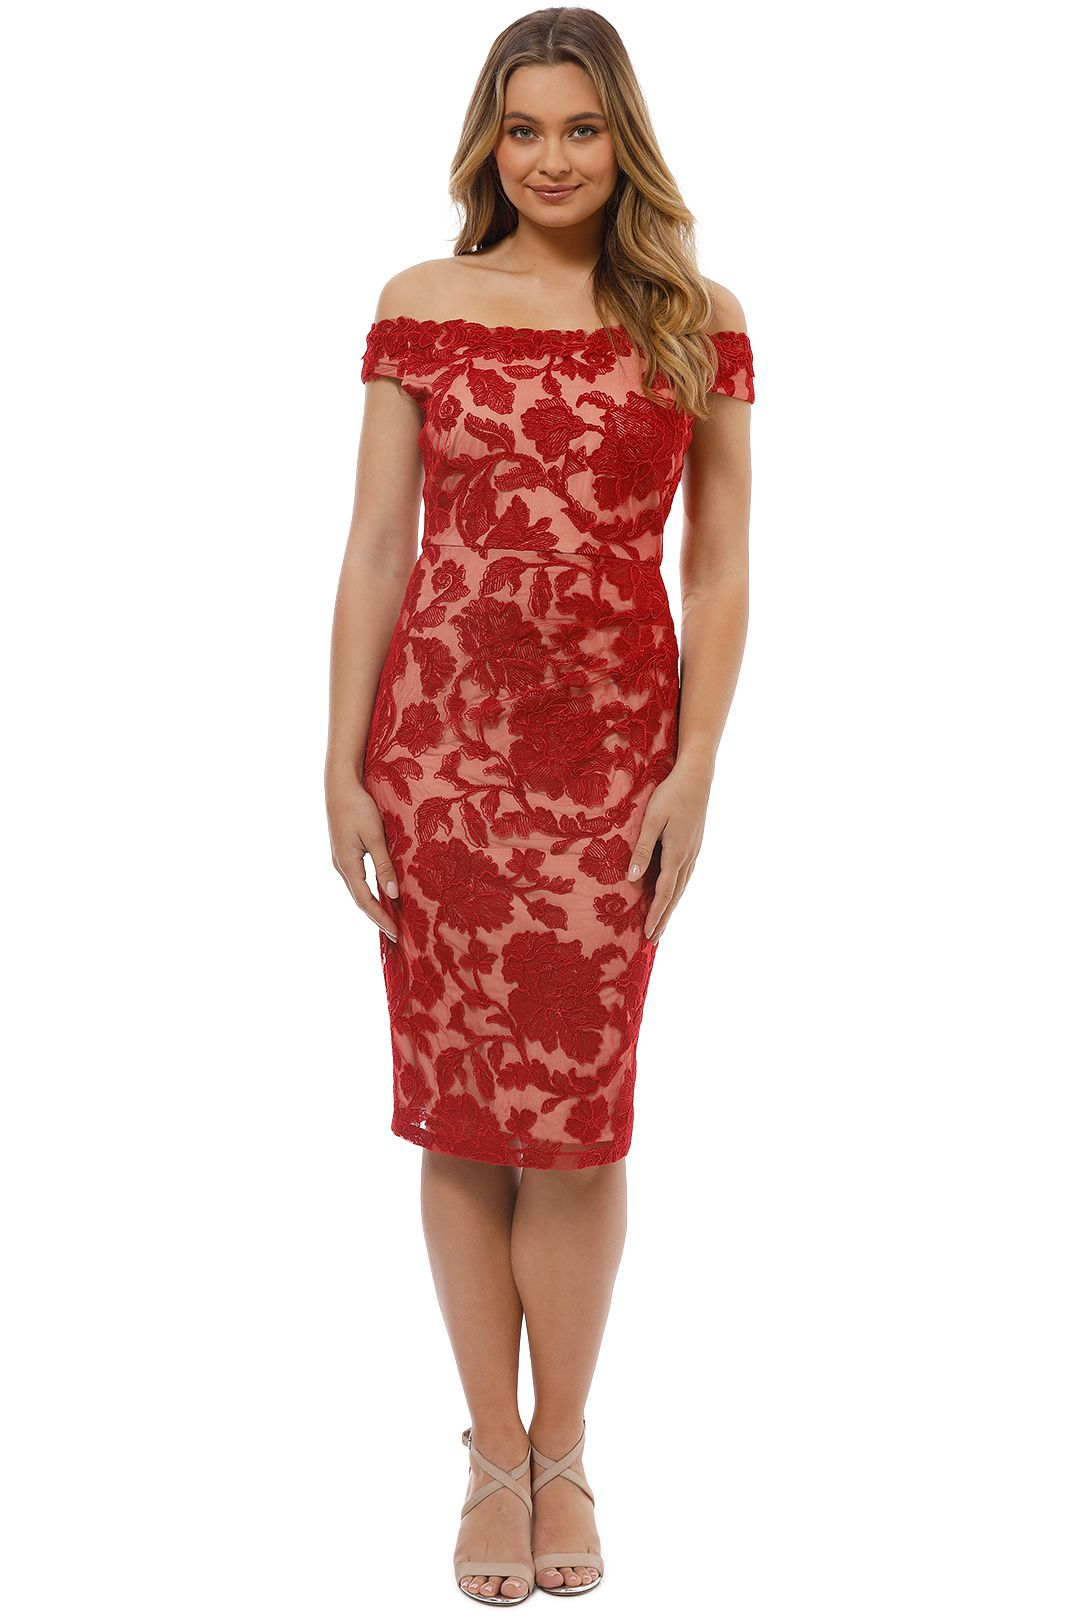 Montique - Christiana Lace Dress - Red - Front